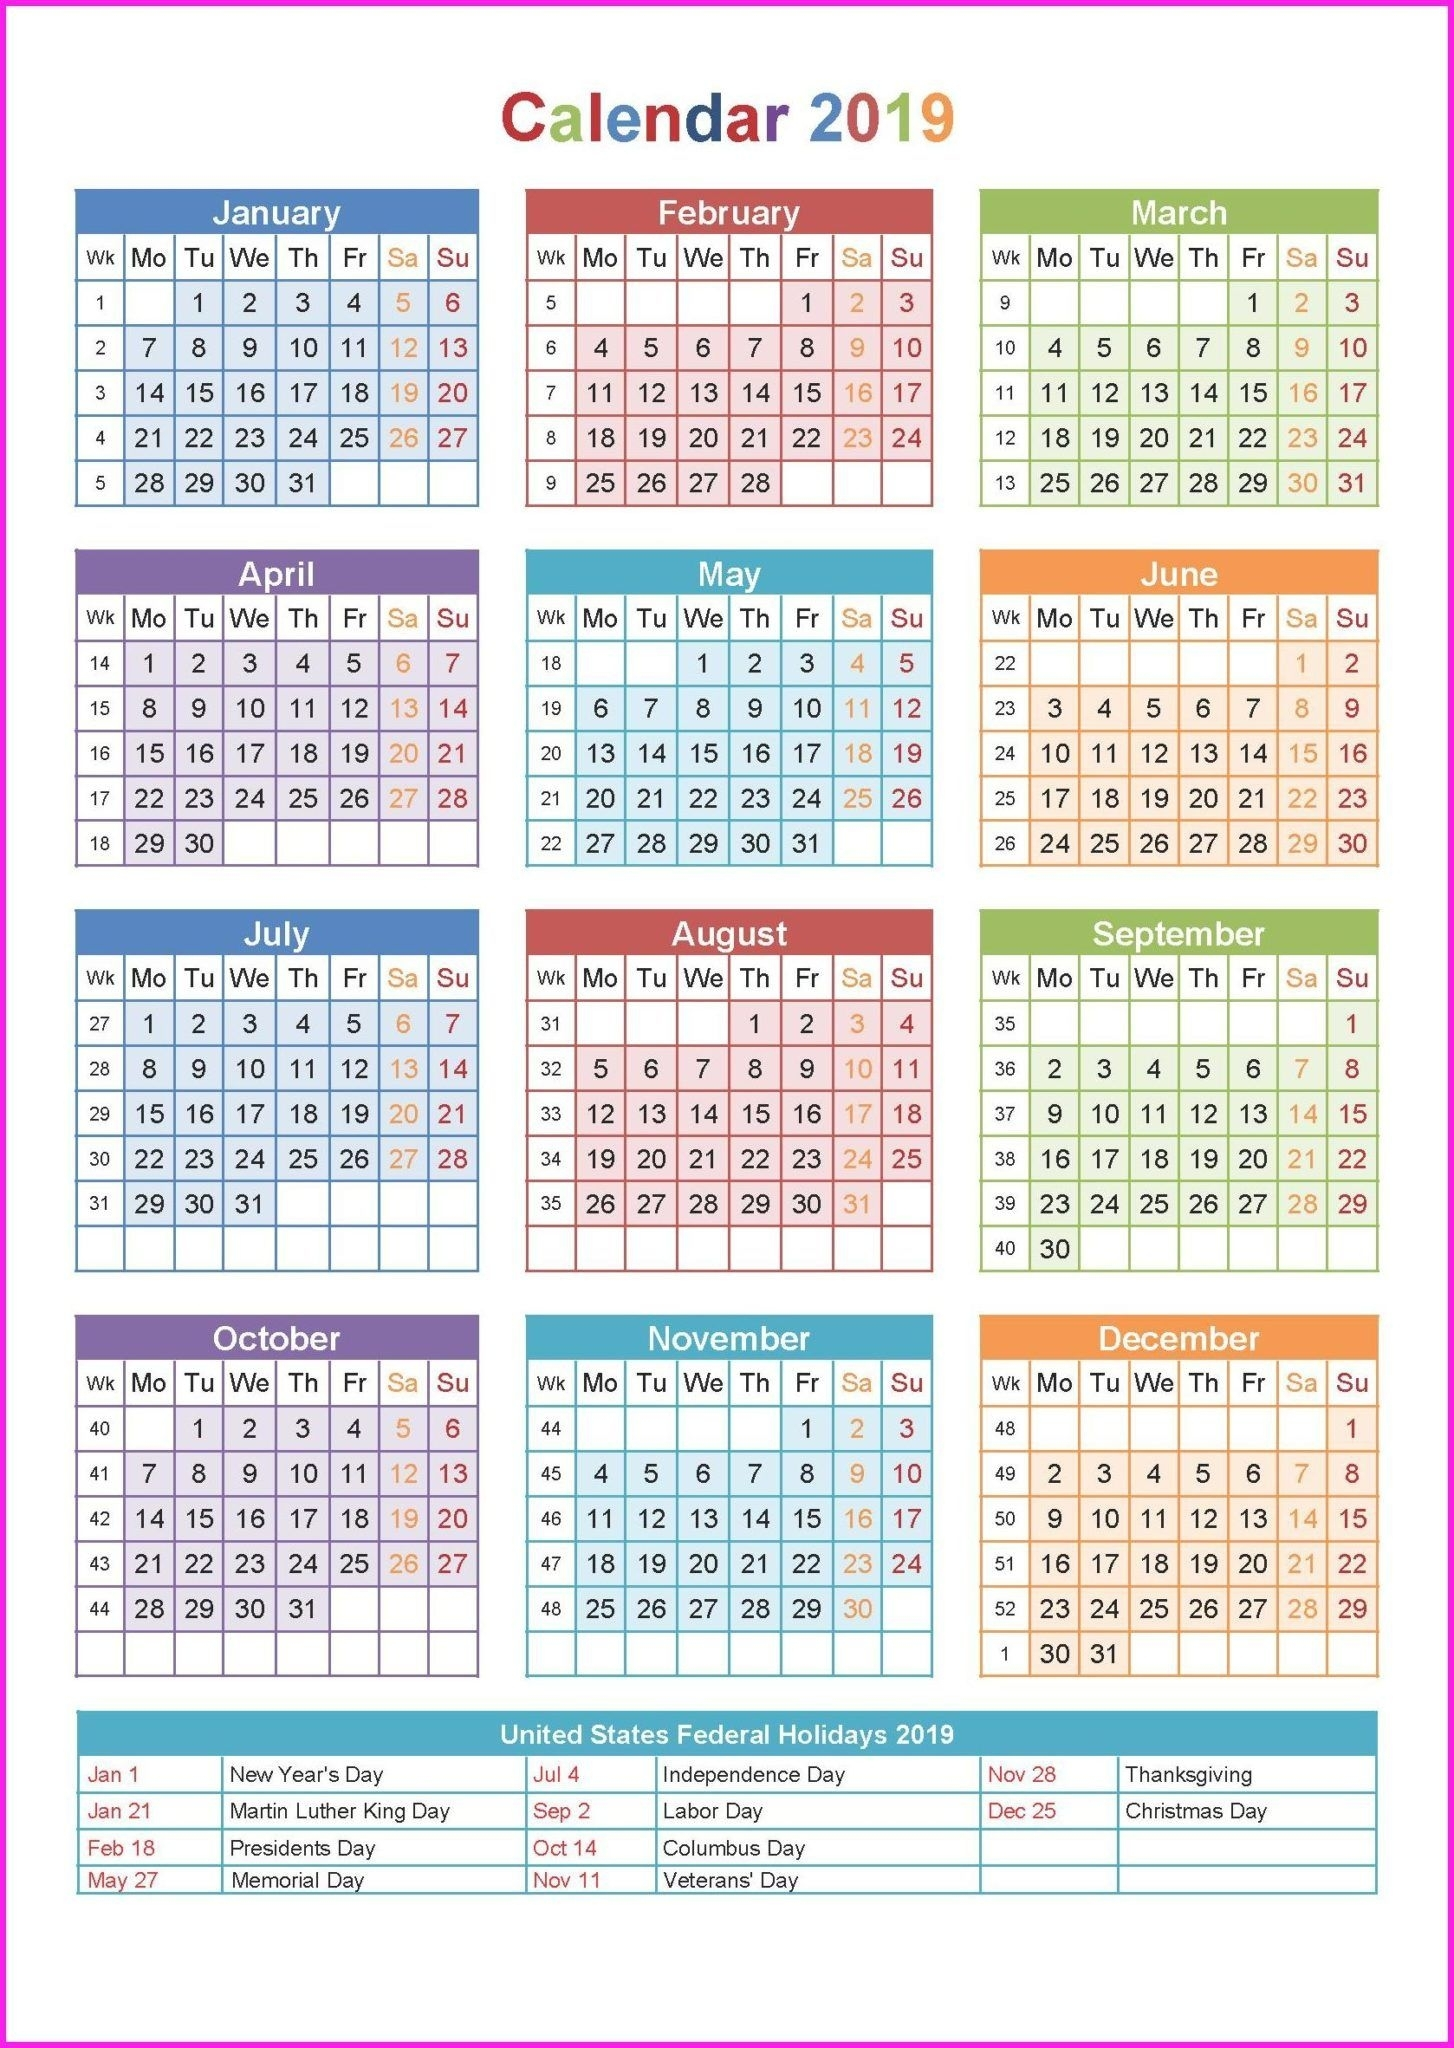 2019 Holiday Calendar Usa | Yearly Calendar In One Page | Yearly pertaining to Free Printable Calendars 2019-2020 With Holidays